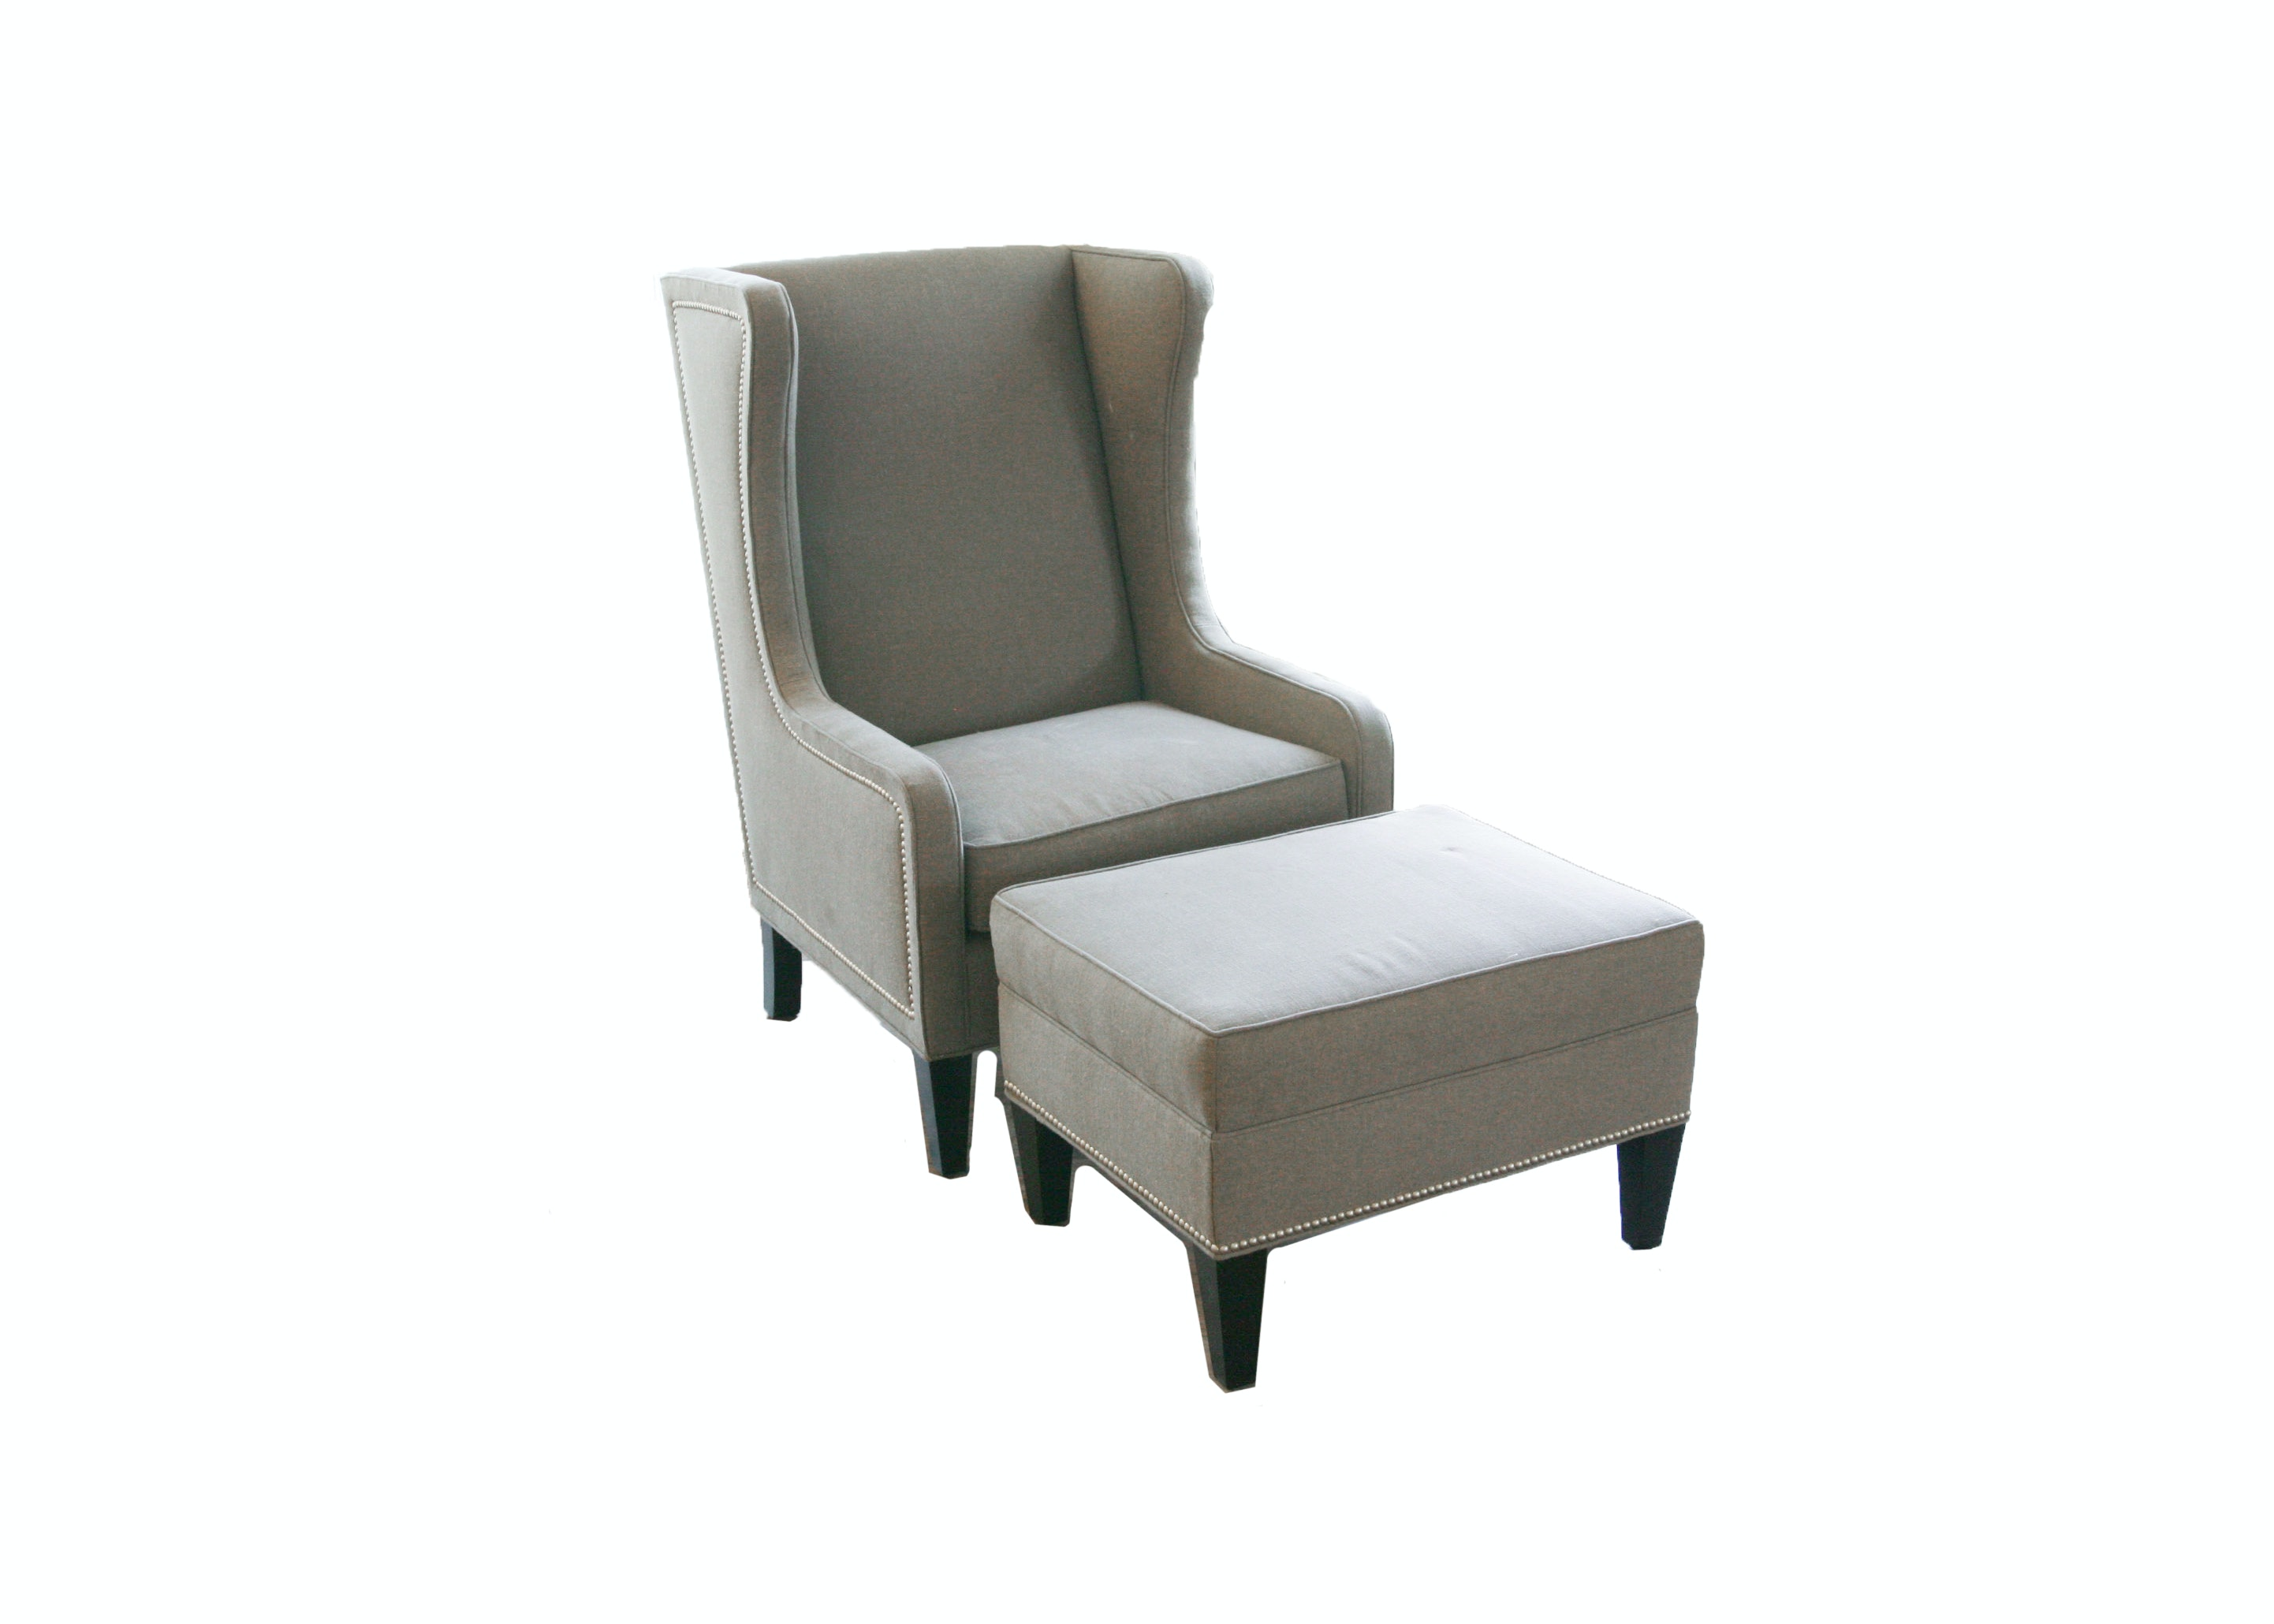 Gabby Furniture Upholstered Arm Chair and Ottoman